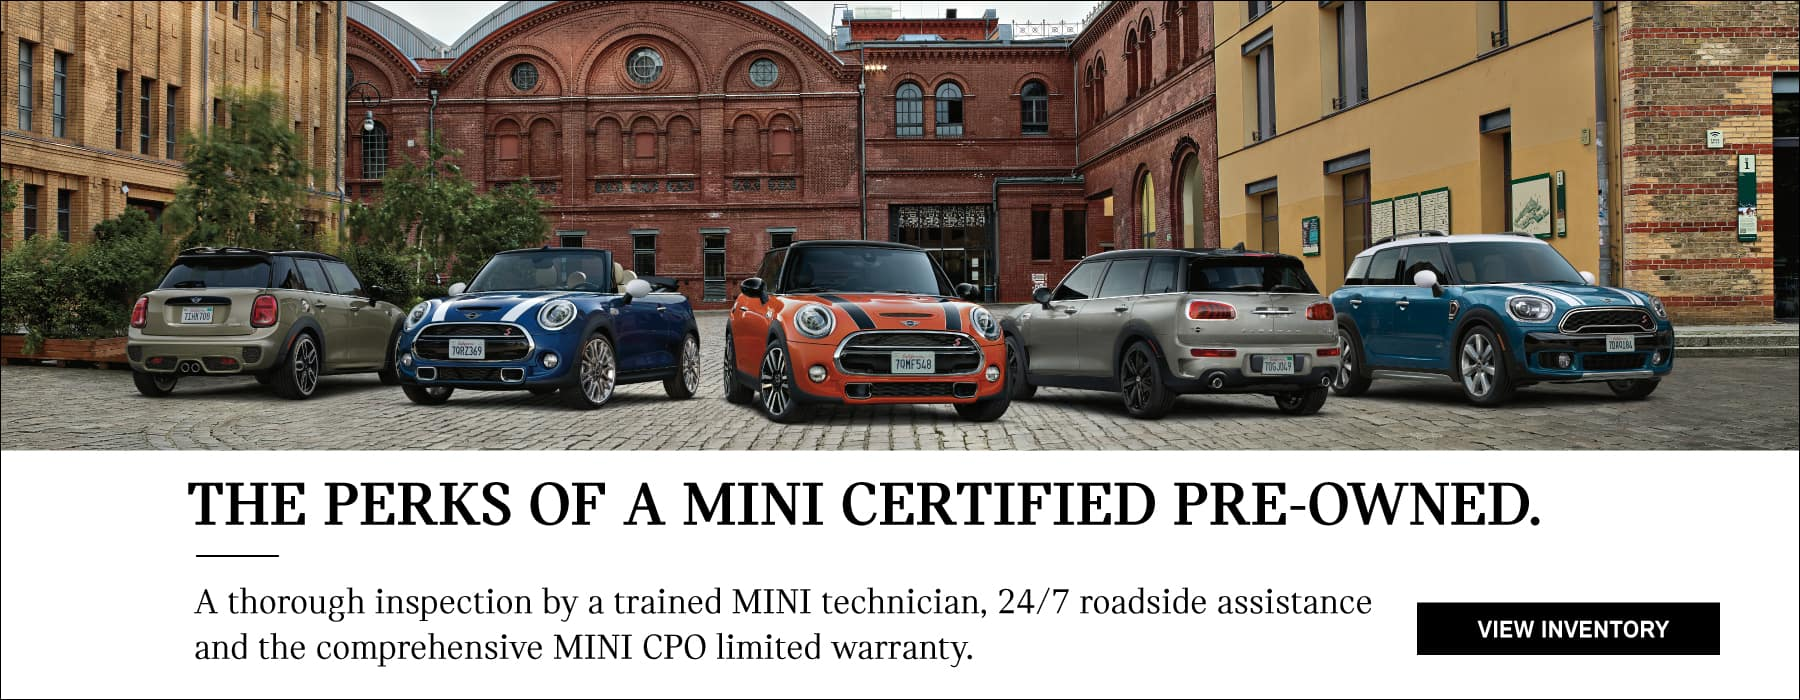 The perks of a MINI certified pre-owned. a thorough inspection by a trained MINI technician, 24/7 road assistance and the comprehensive MINI CPO warranty.